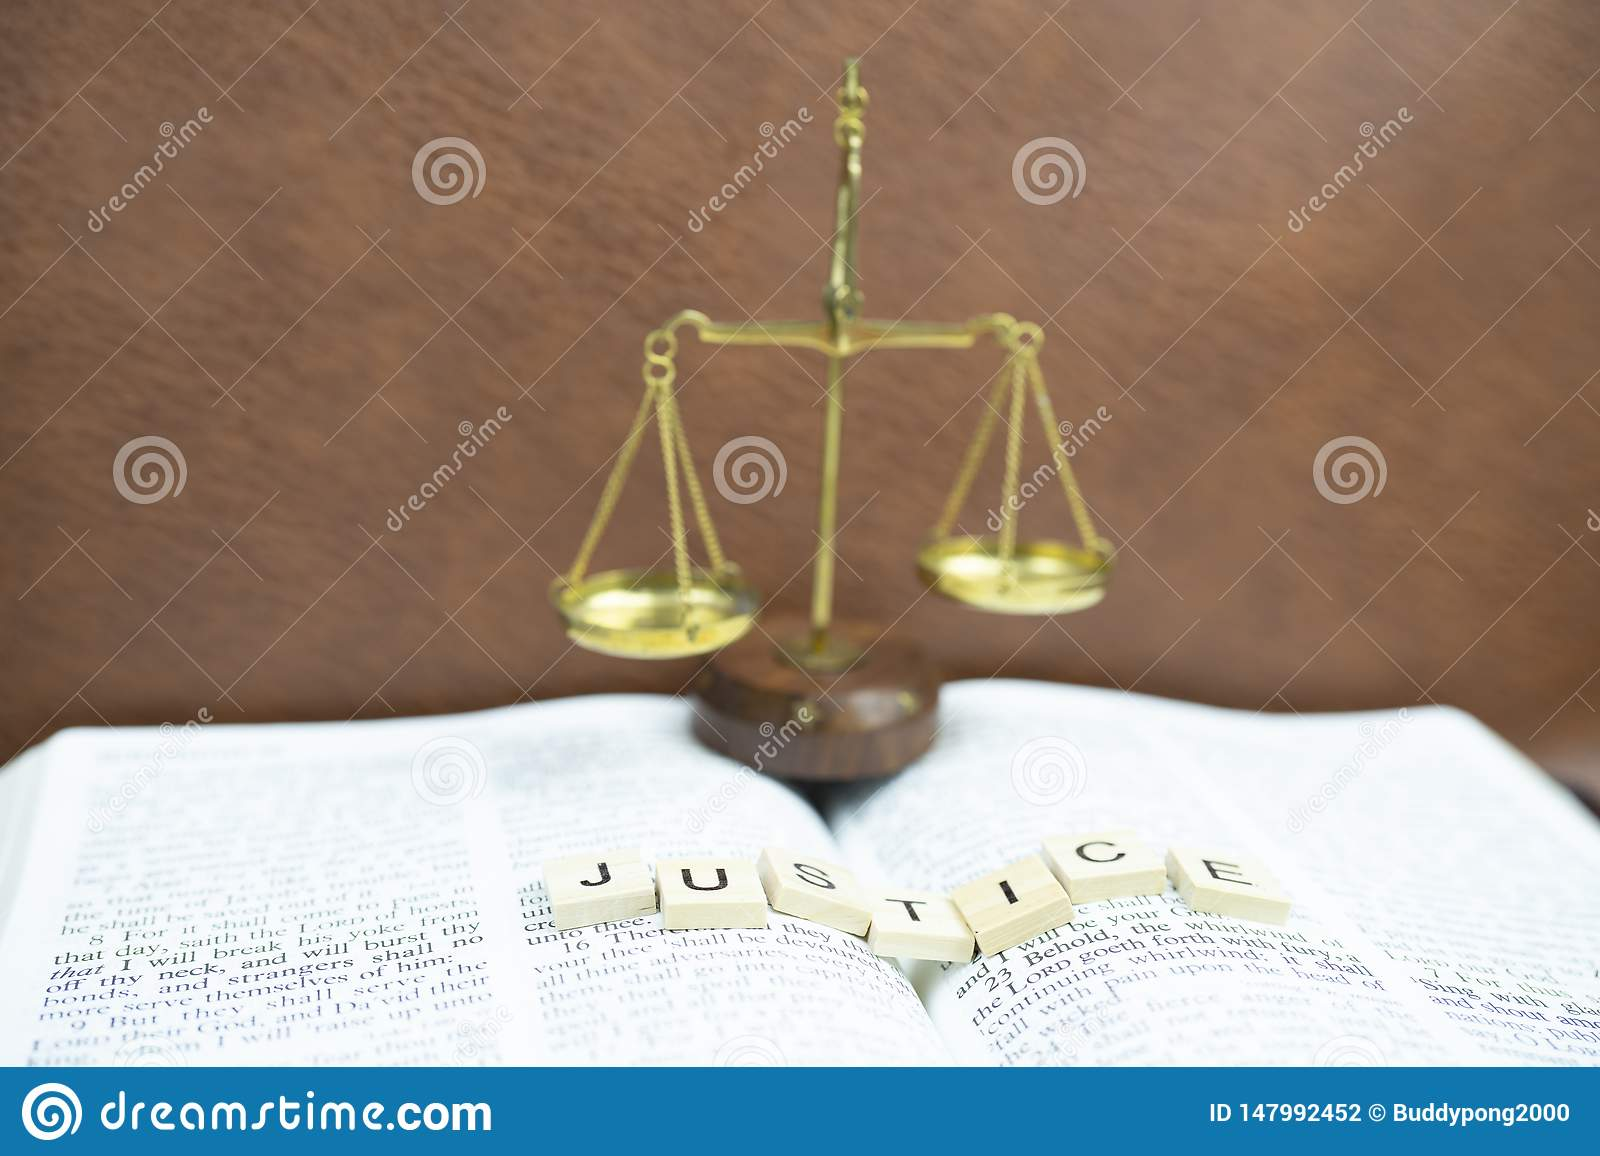 Holy bible is justice stock photo  Image of holy, glowing - 147992452